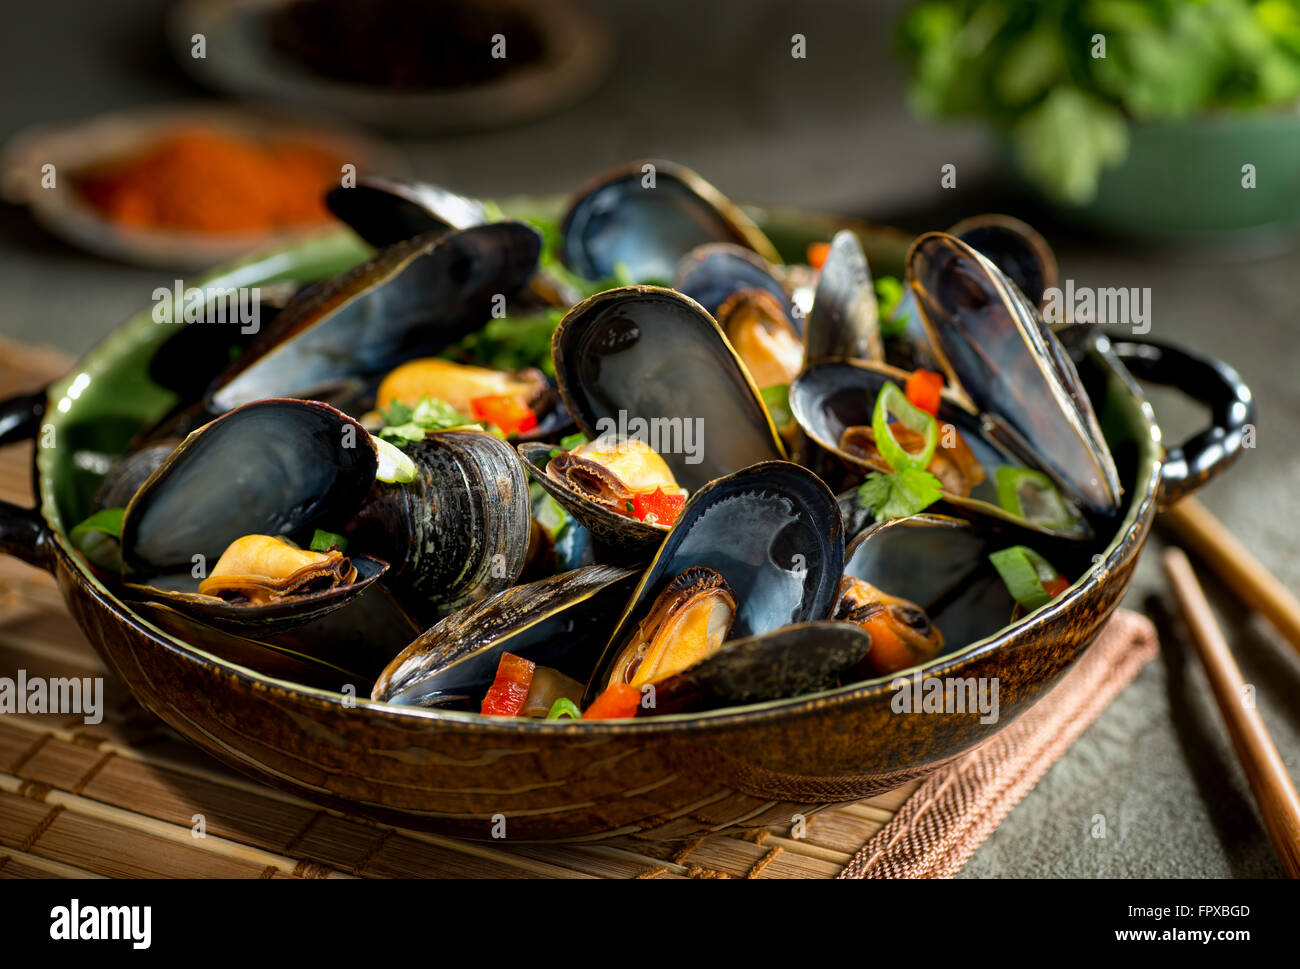 Delicious asian style steamed mussels with red pepper, green onion, and coriander in a coconut broth. - Stock Image